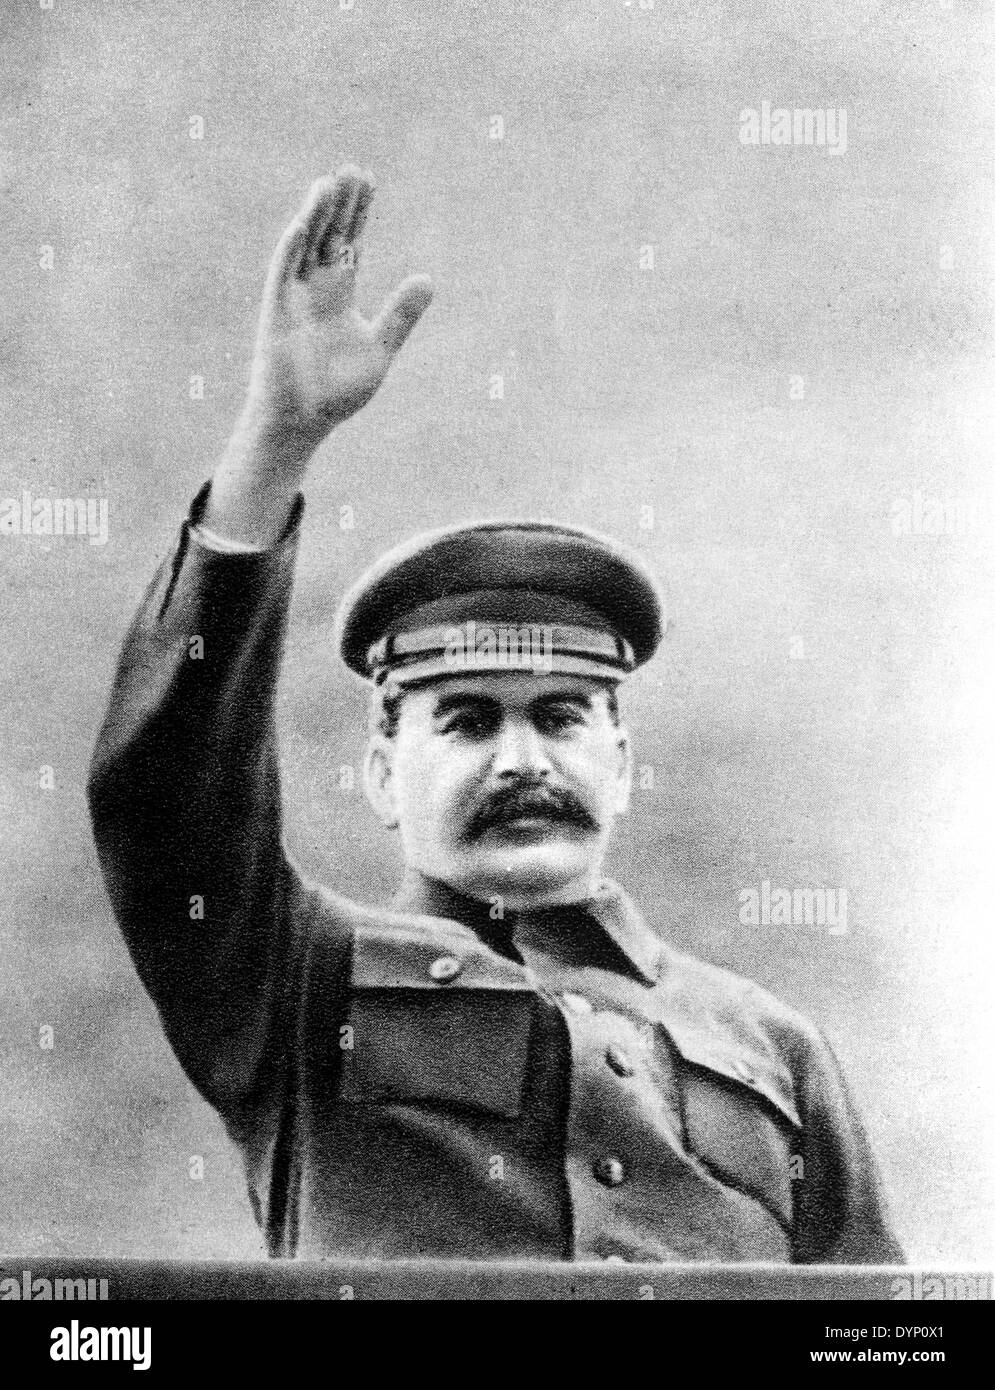 how stalin became a leader of Stalin was clever in his tactics to become leader lenin was seen as the figure head of the communist party, stalin used this to his advantage in winning over the russia population at lenin's funeral stalin gave a speech creating the impression he was deeply upset at the passing of his former superior.